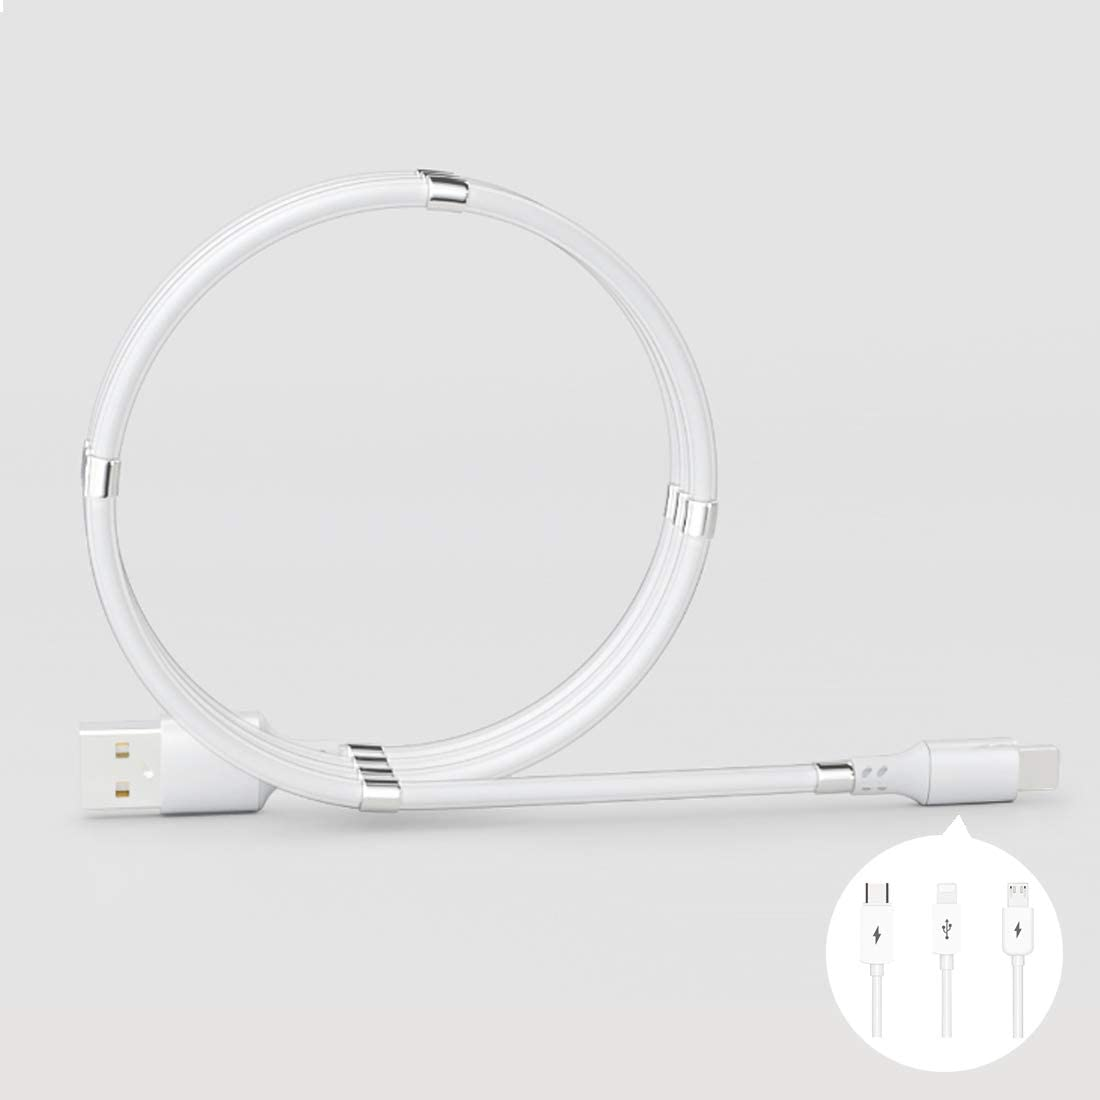 Magnetic Auto Storage USB 2.0 Charger Cable with Carrying to Phone Port, for Charging Phone/Android Phones, Headset and Tablets or Connecting PC for Transferring Files (3 Ft, White)